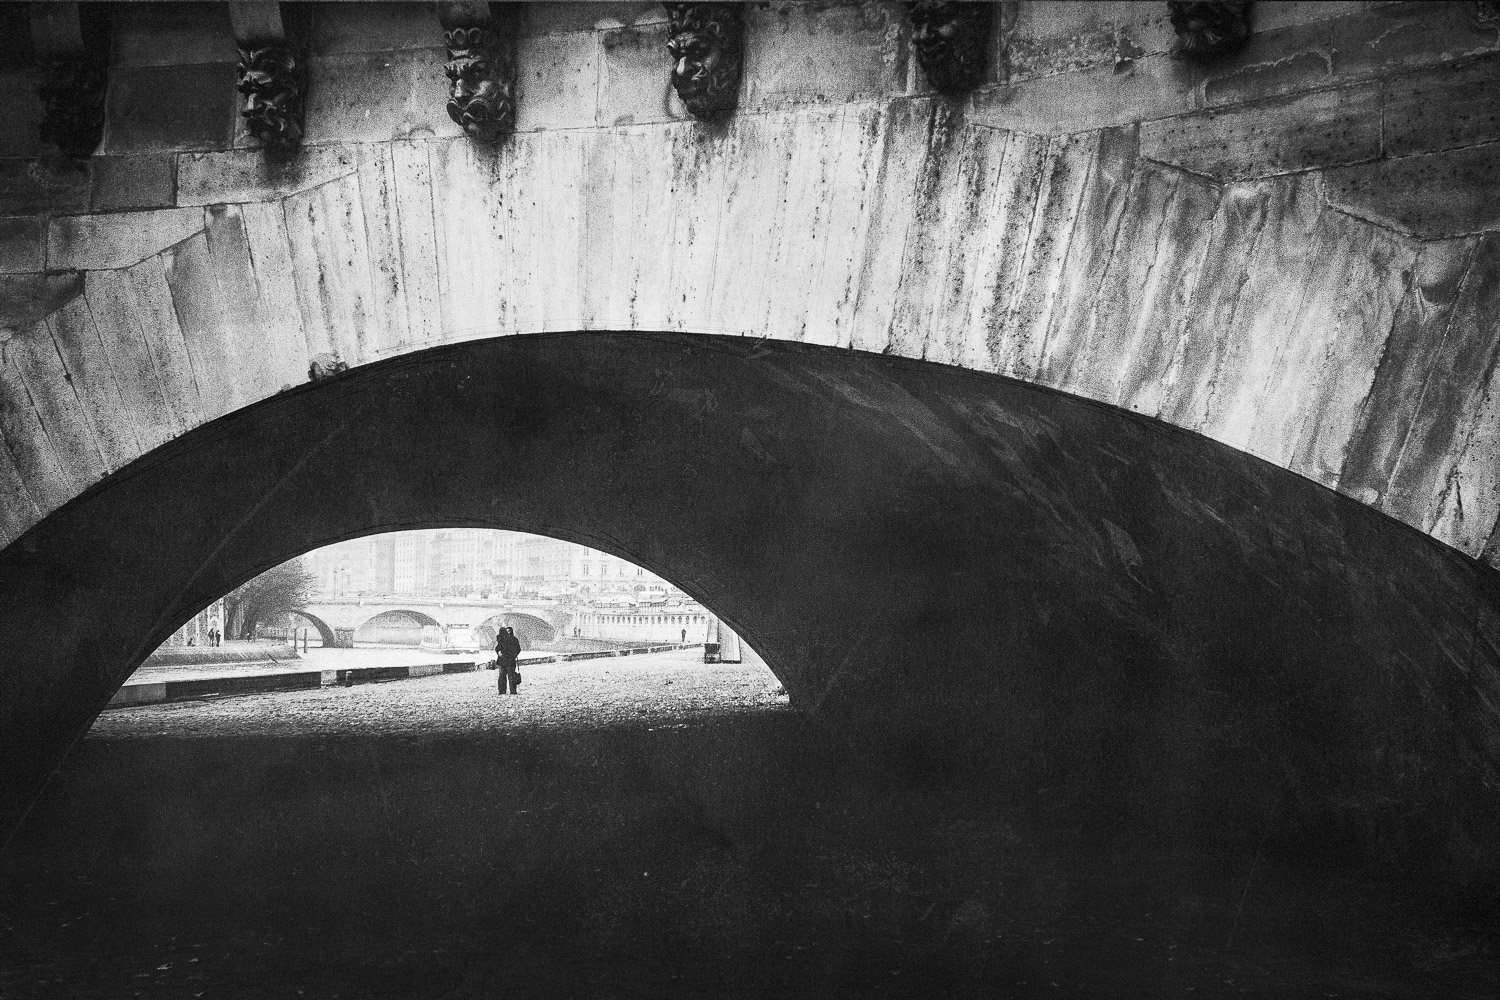 Lovers kiss under the bridges of Paris, France